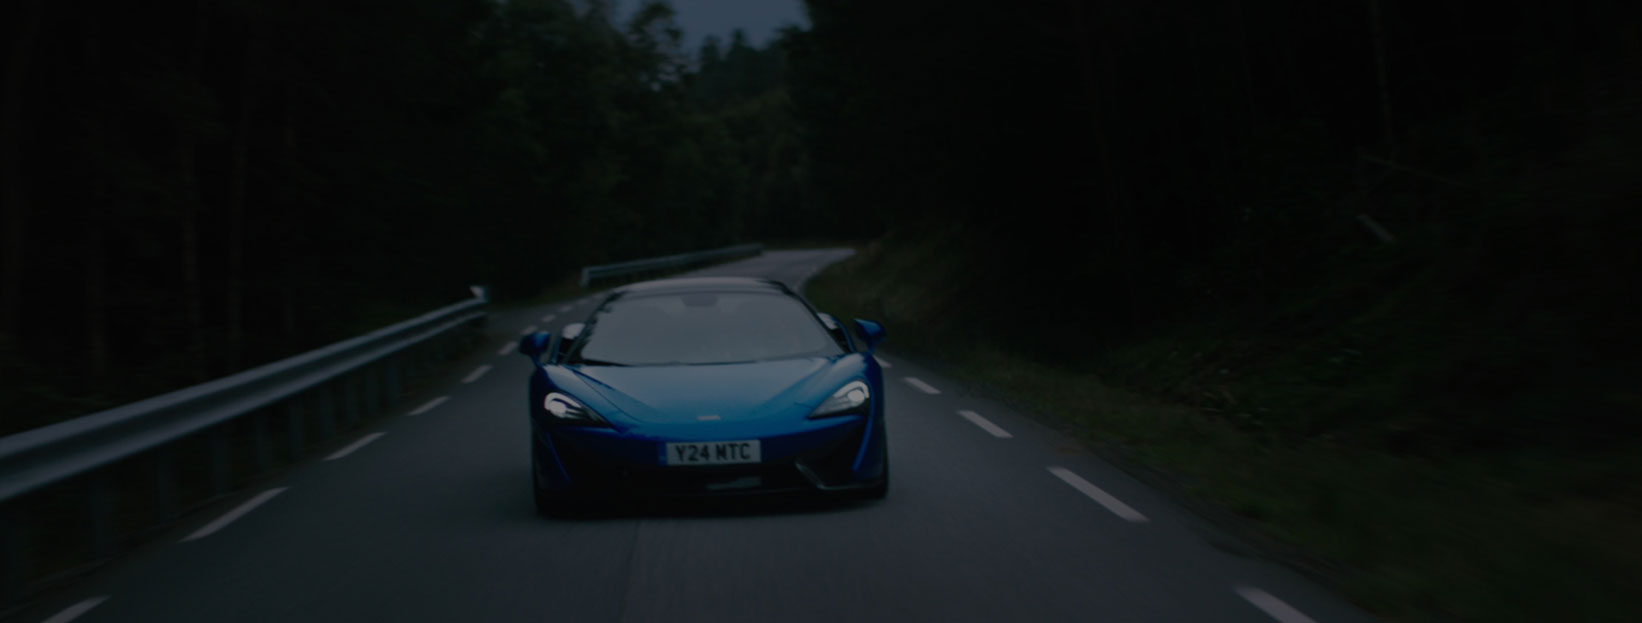 maclaren_bkg_VIDEO_BANNER